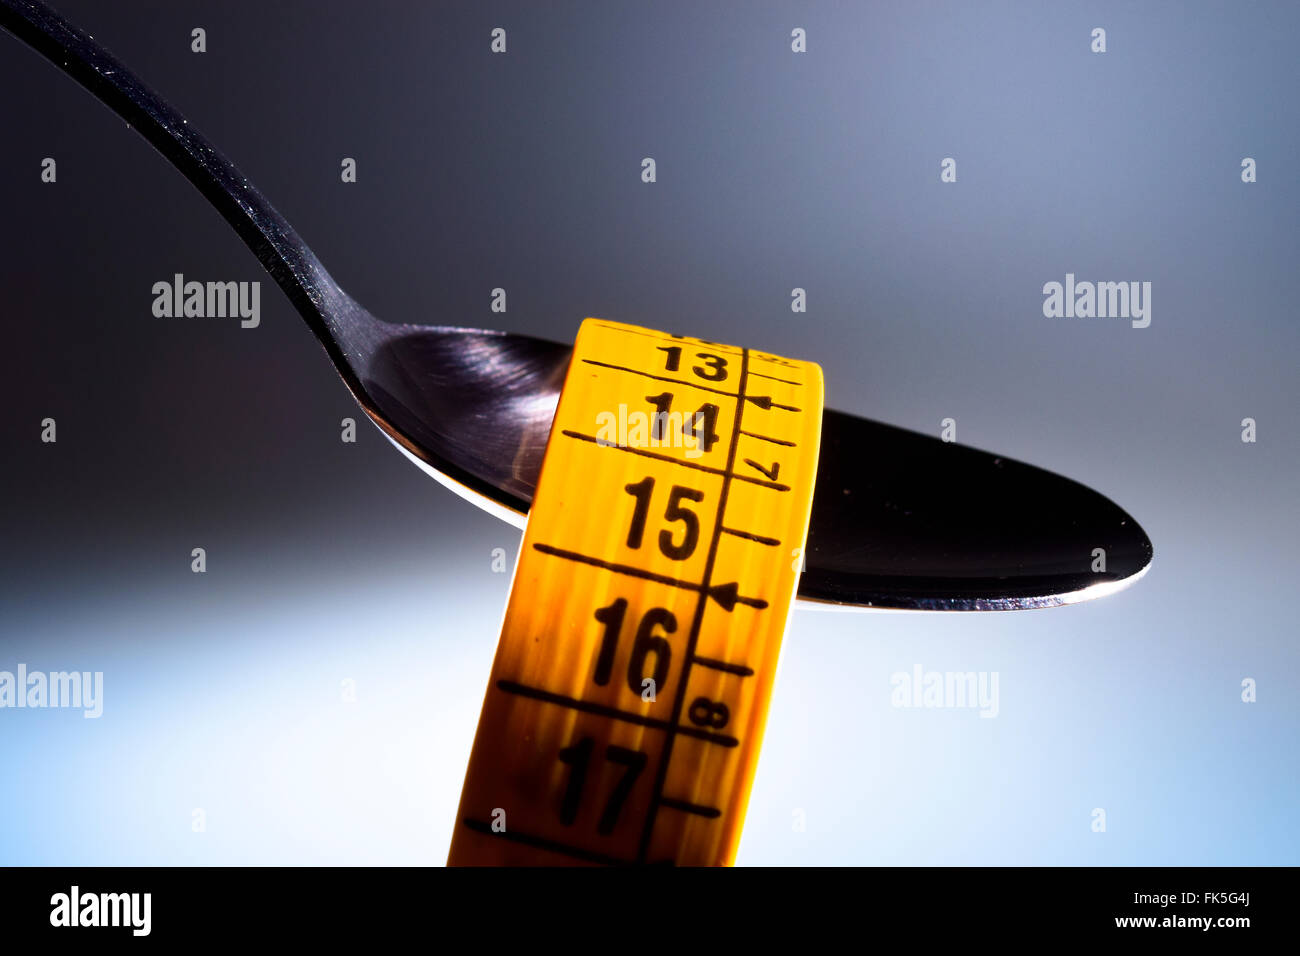 Spoon and measuring tape. Concept of nutrition and diet. - Stock Image